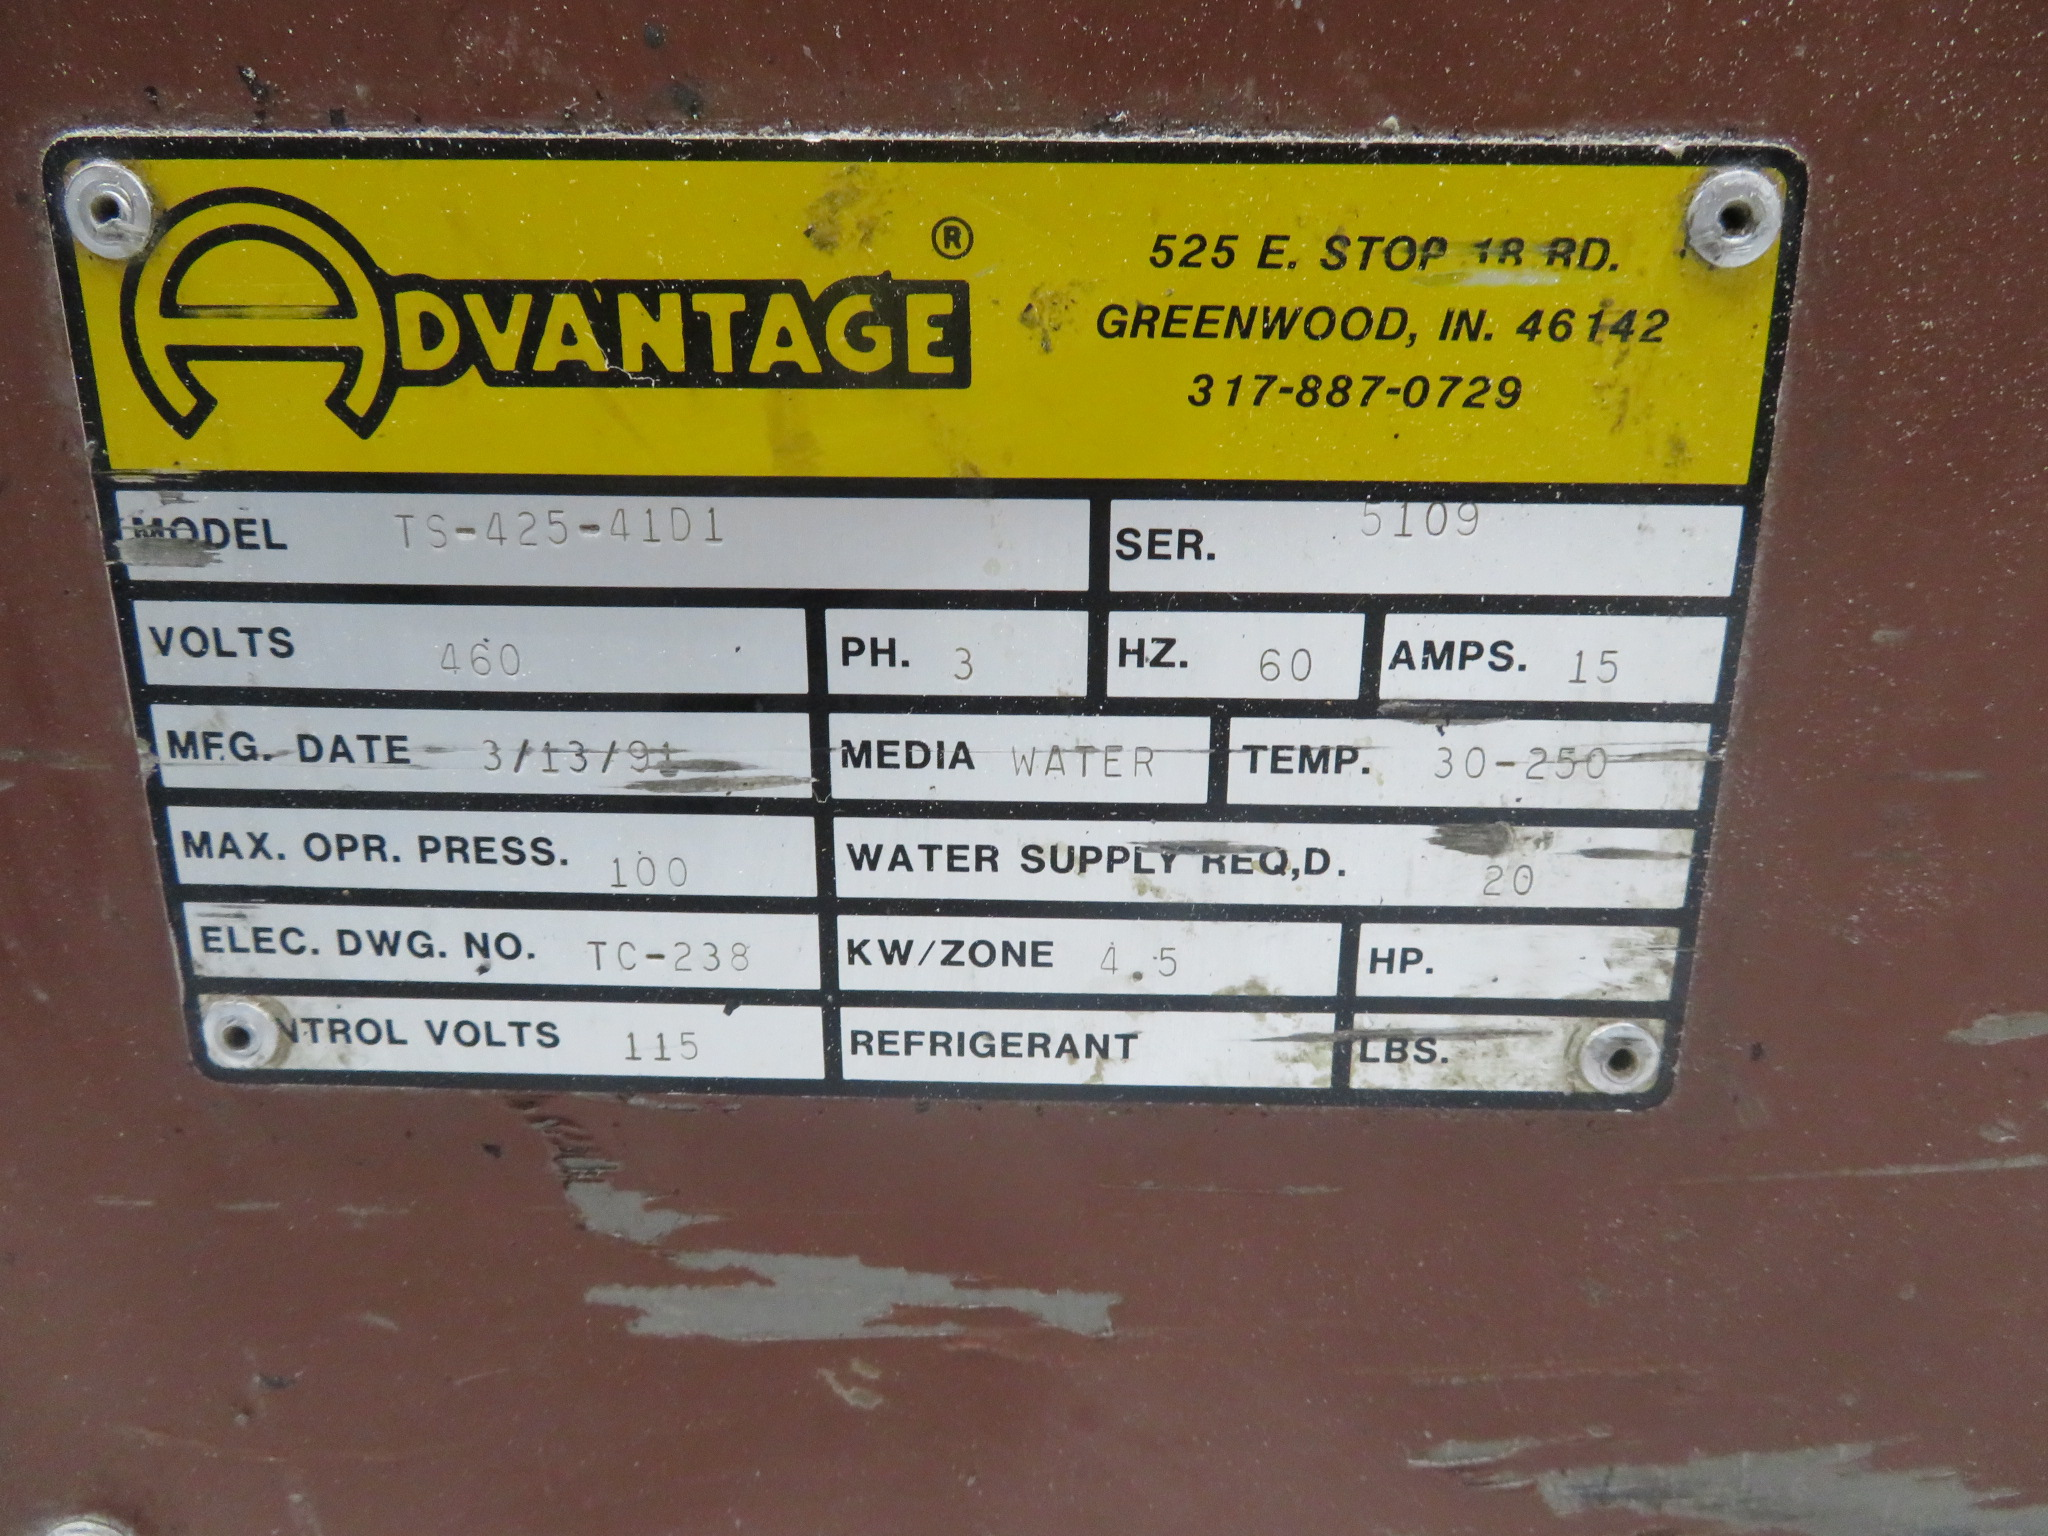 Advantage TS-42-4101 Used Mold Temperature Controller, 4hp, 4.5 KW, 460V